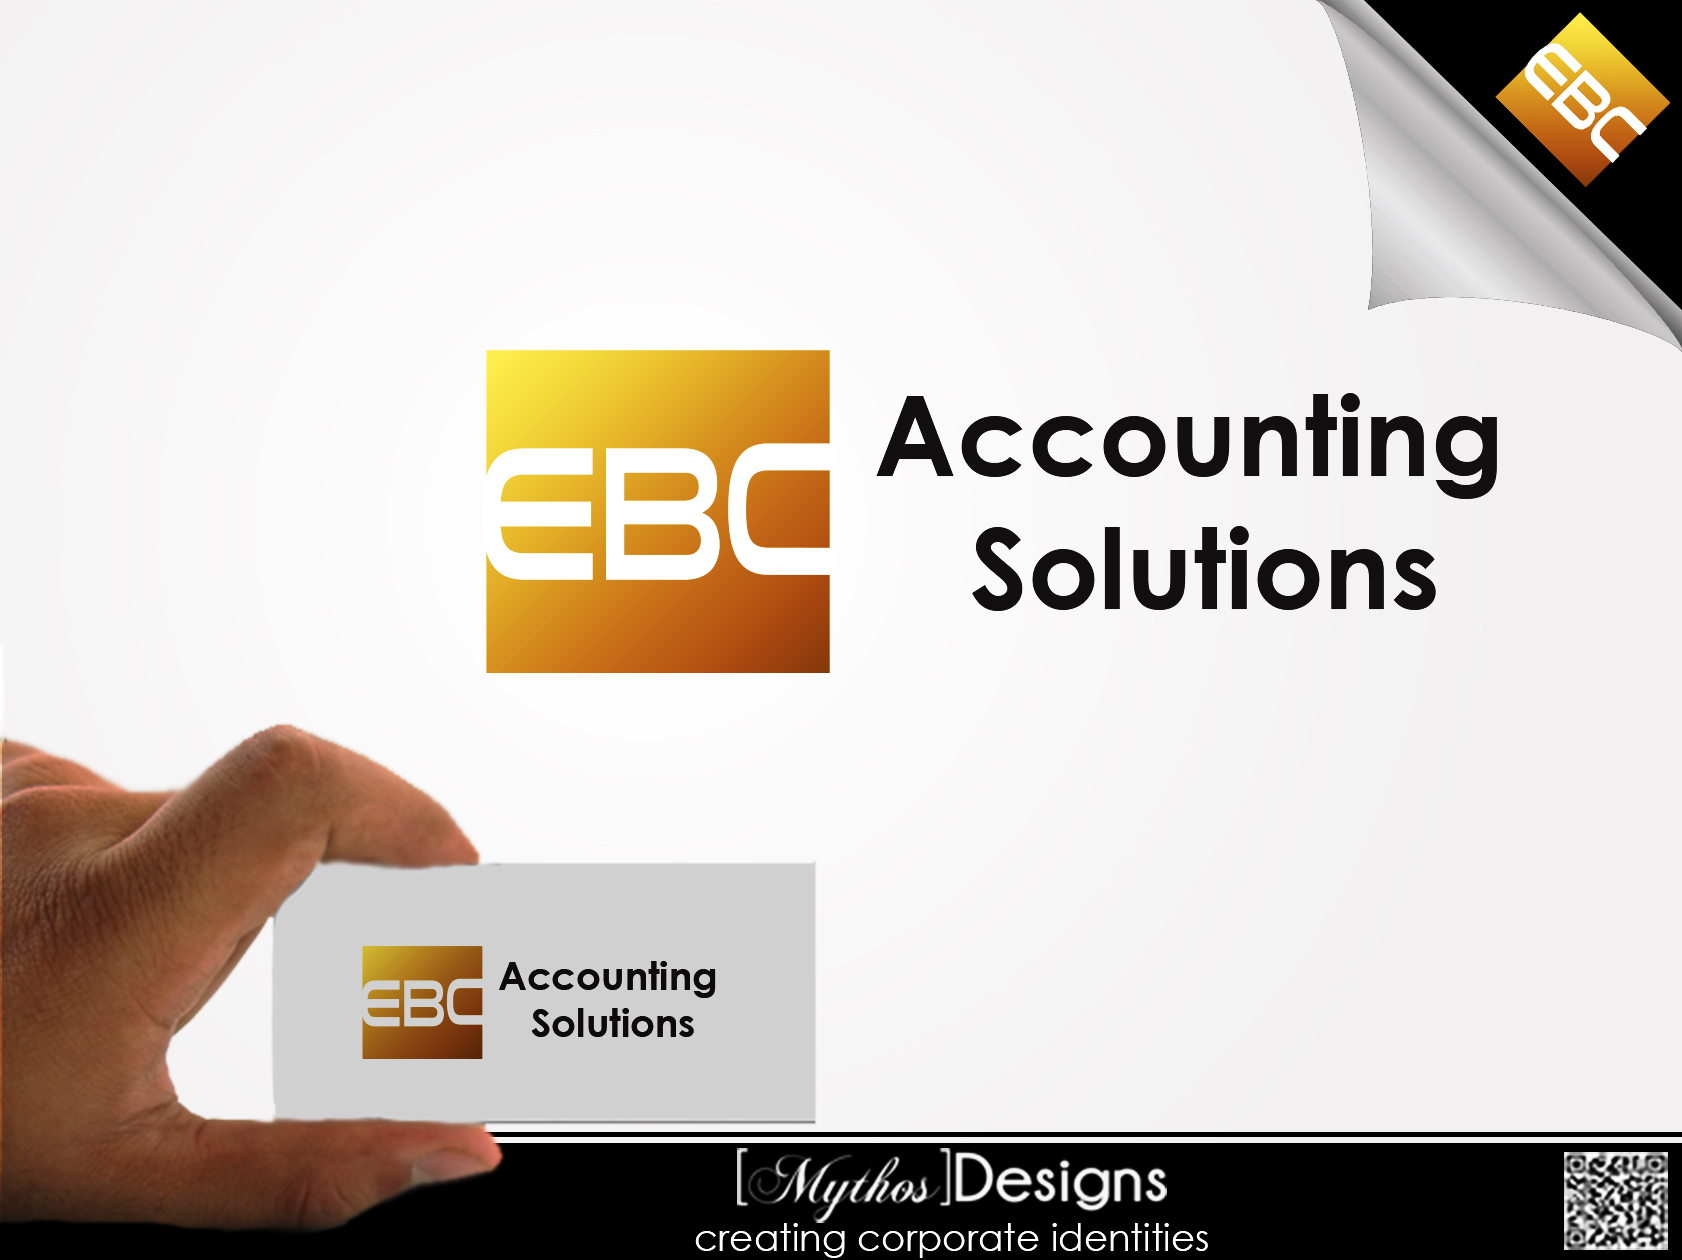 Logo Design by Mythos Designs - Entry No. 217 in the Logo Design Contest New Logo Design for EBC Accounting Solutions.